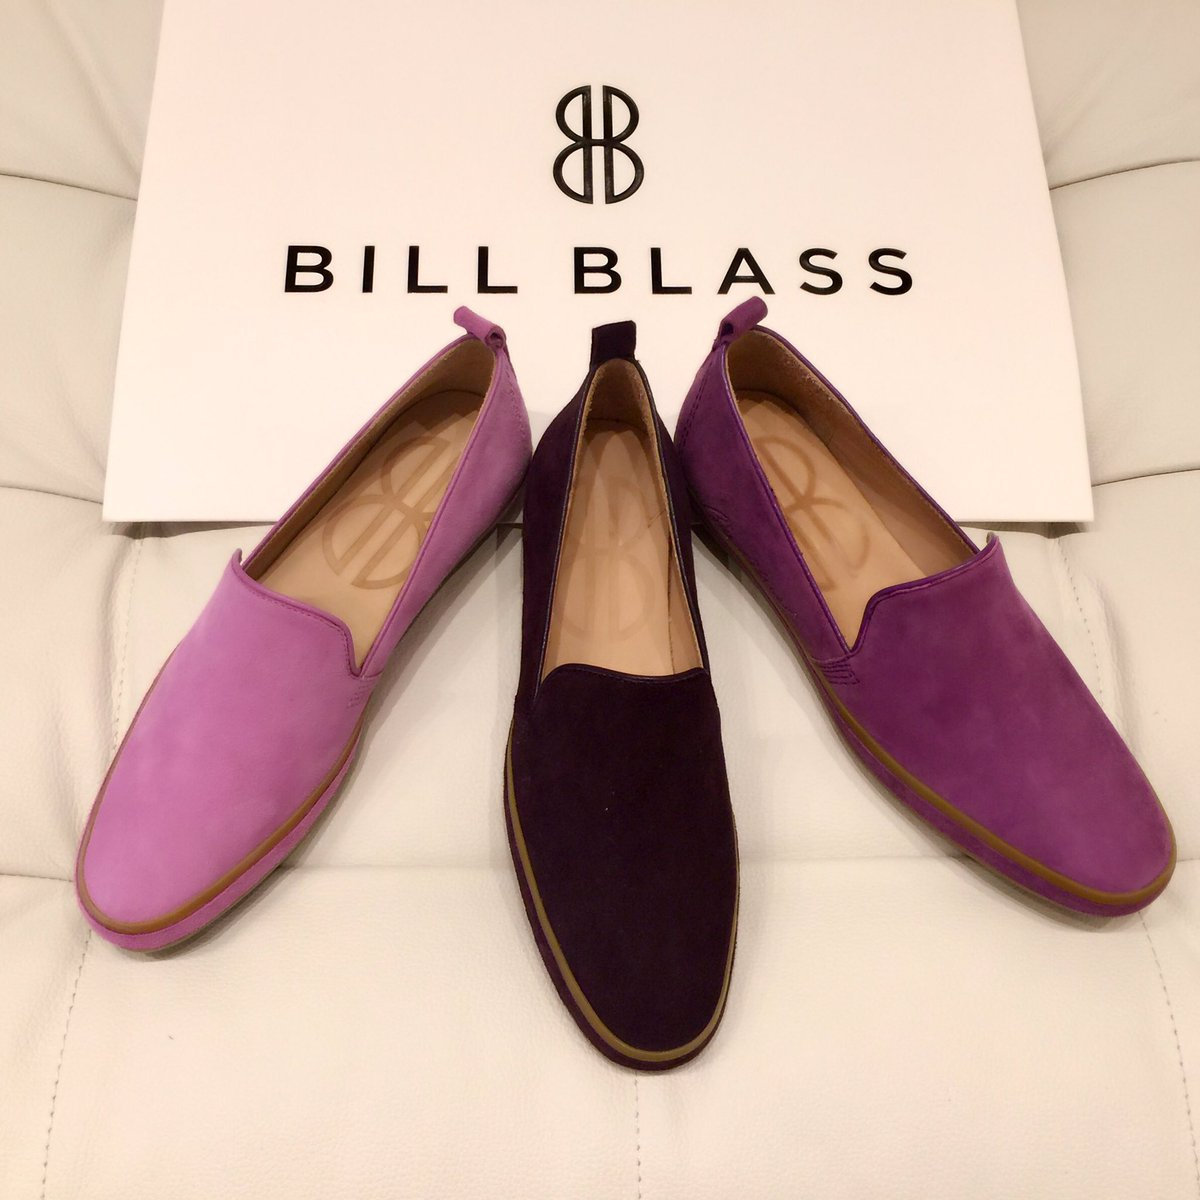 Shades of #purple😍 Check out our colorful slip on collection to change your #friday mood! #billblass #suttonslipon https://t.co/DG2obSTfBI